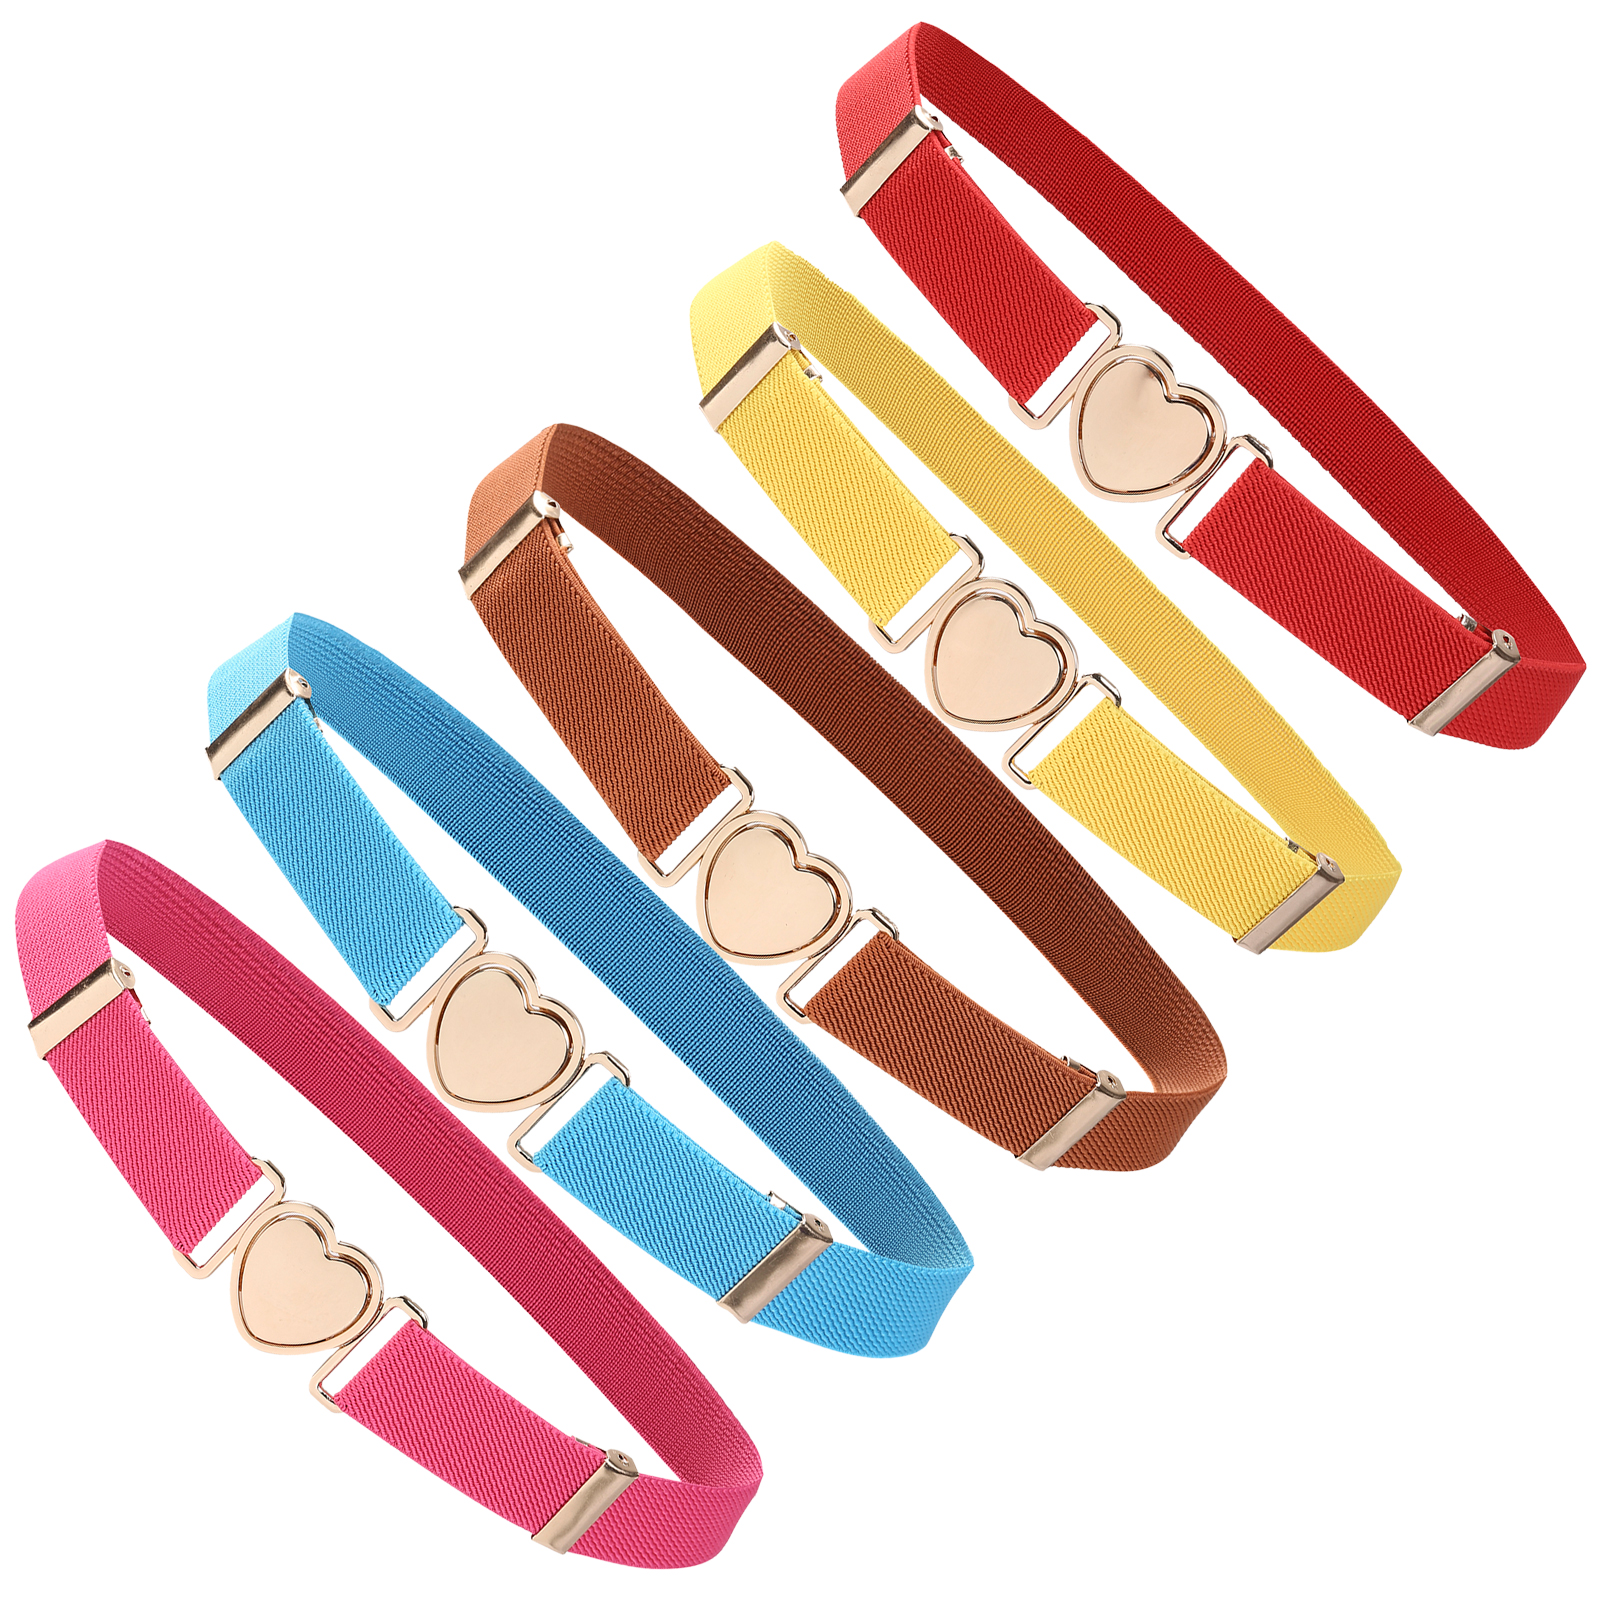 2021 New Style Children Stretch Belts Girls Multicolor Adjustable Elastic Waist Belts with Heart Shape Buckle for Dress Pants